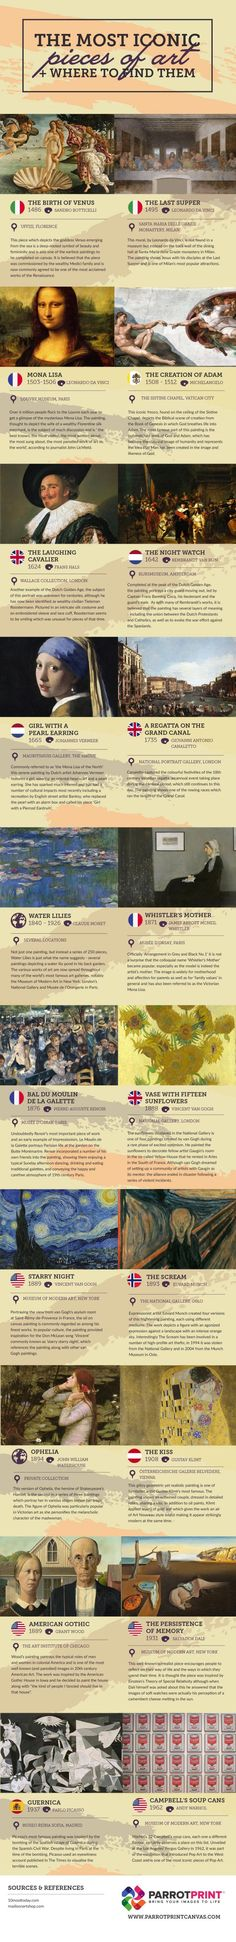 The Most Iconic Pieces of Art And Where To Find Them #Infographic #Art #Painting